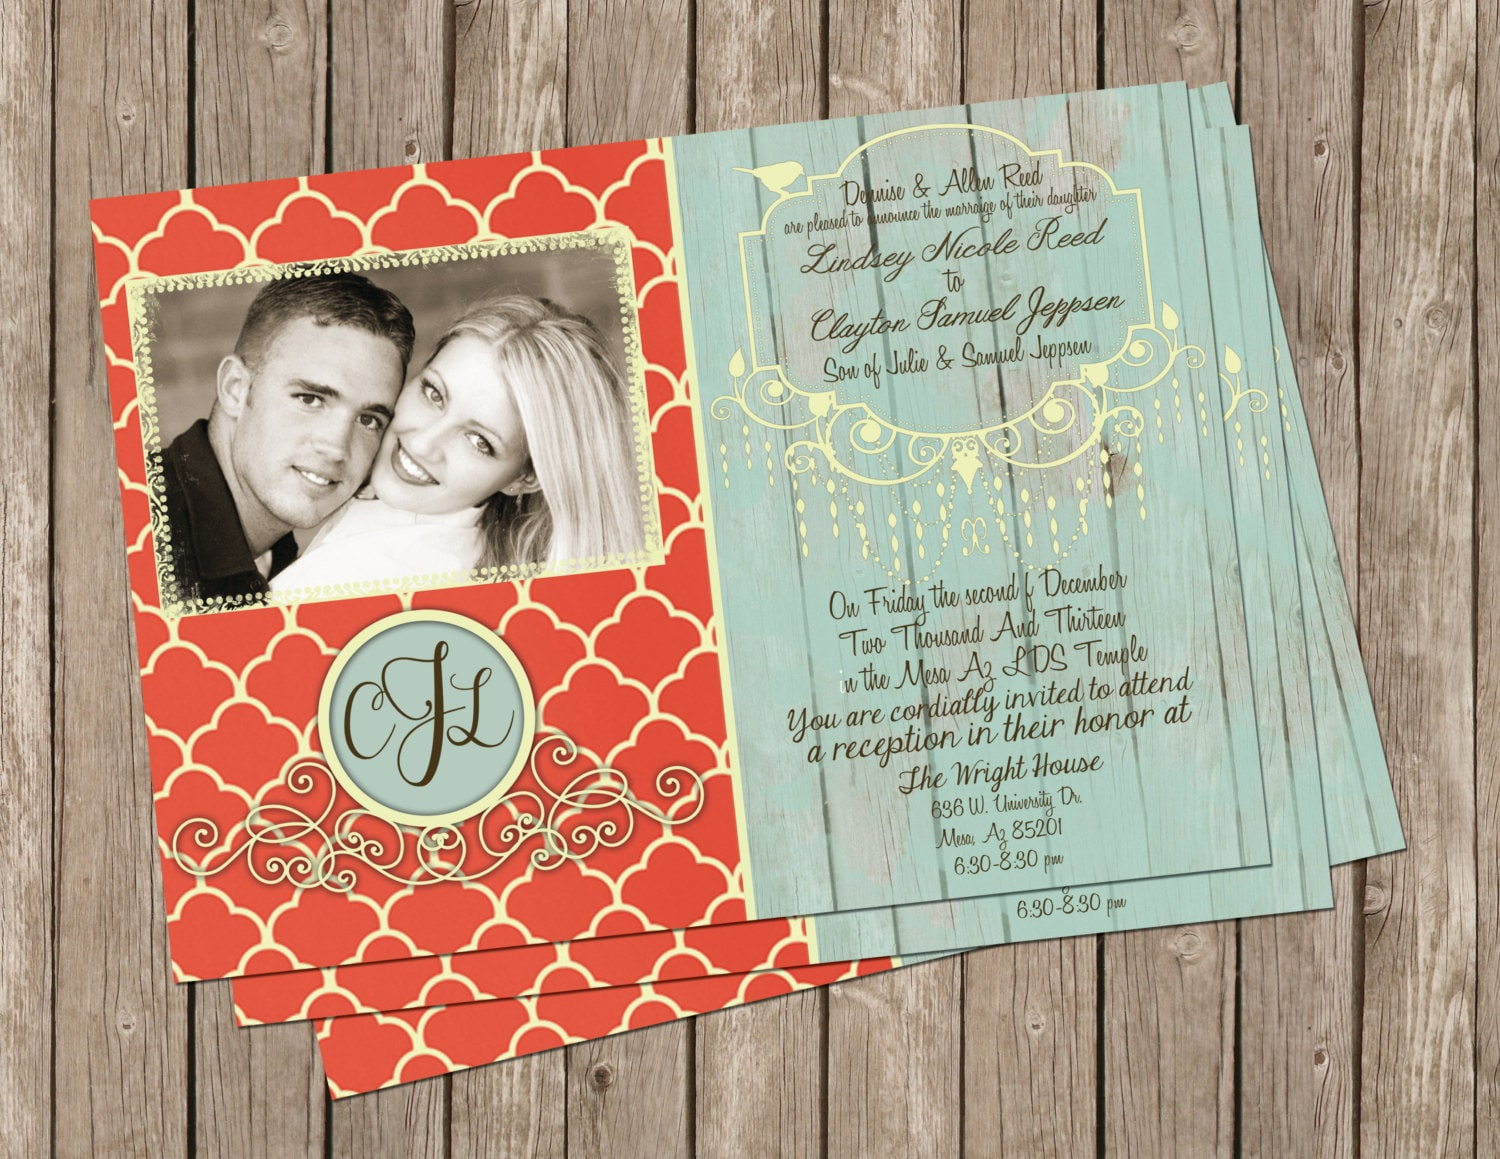 Cheap Shabby Chic Wedding Invitations: Shabby Chic Wedding Invitation In Coral And Mint With